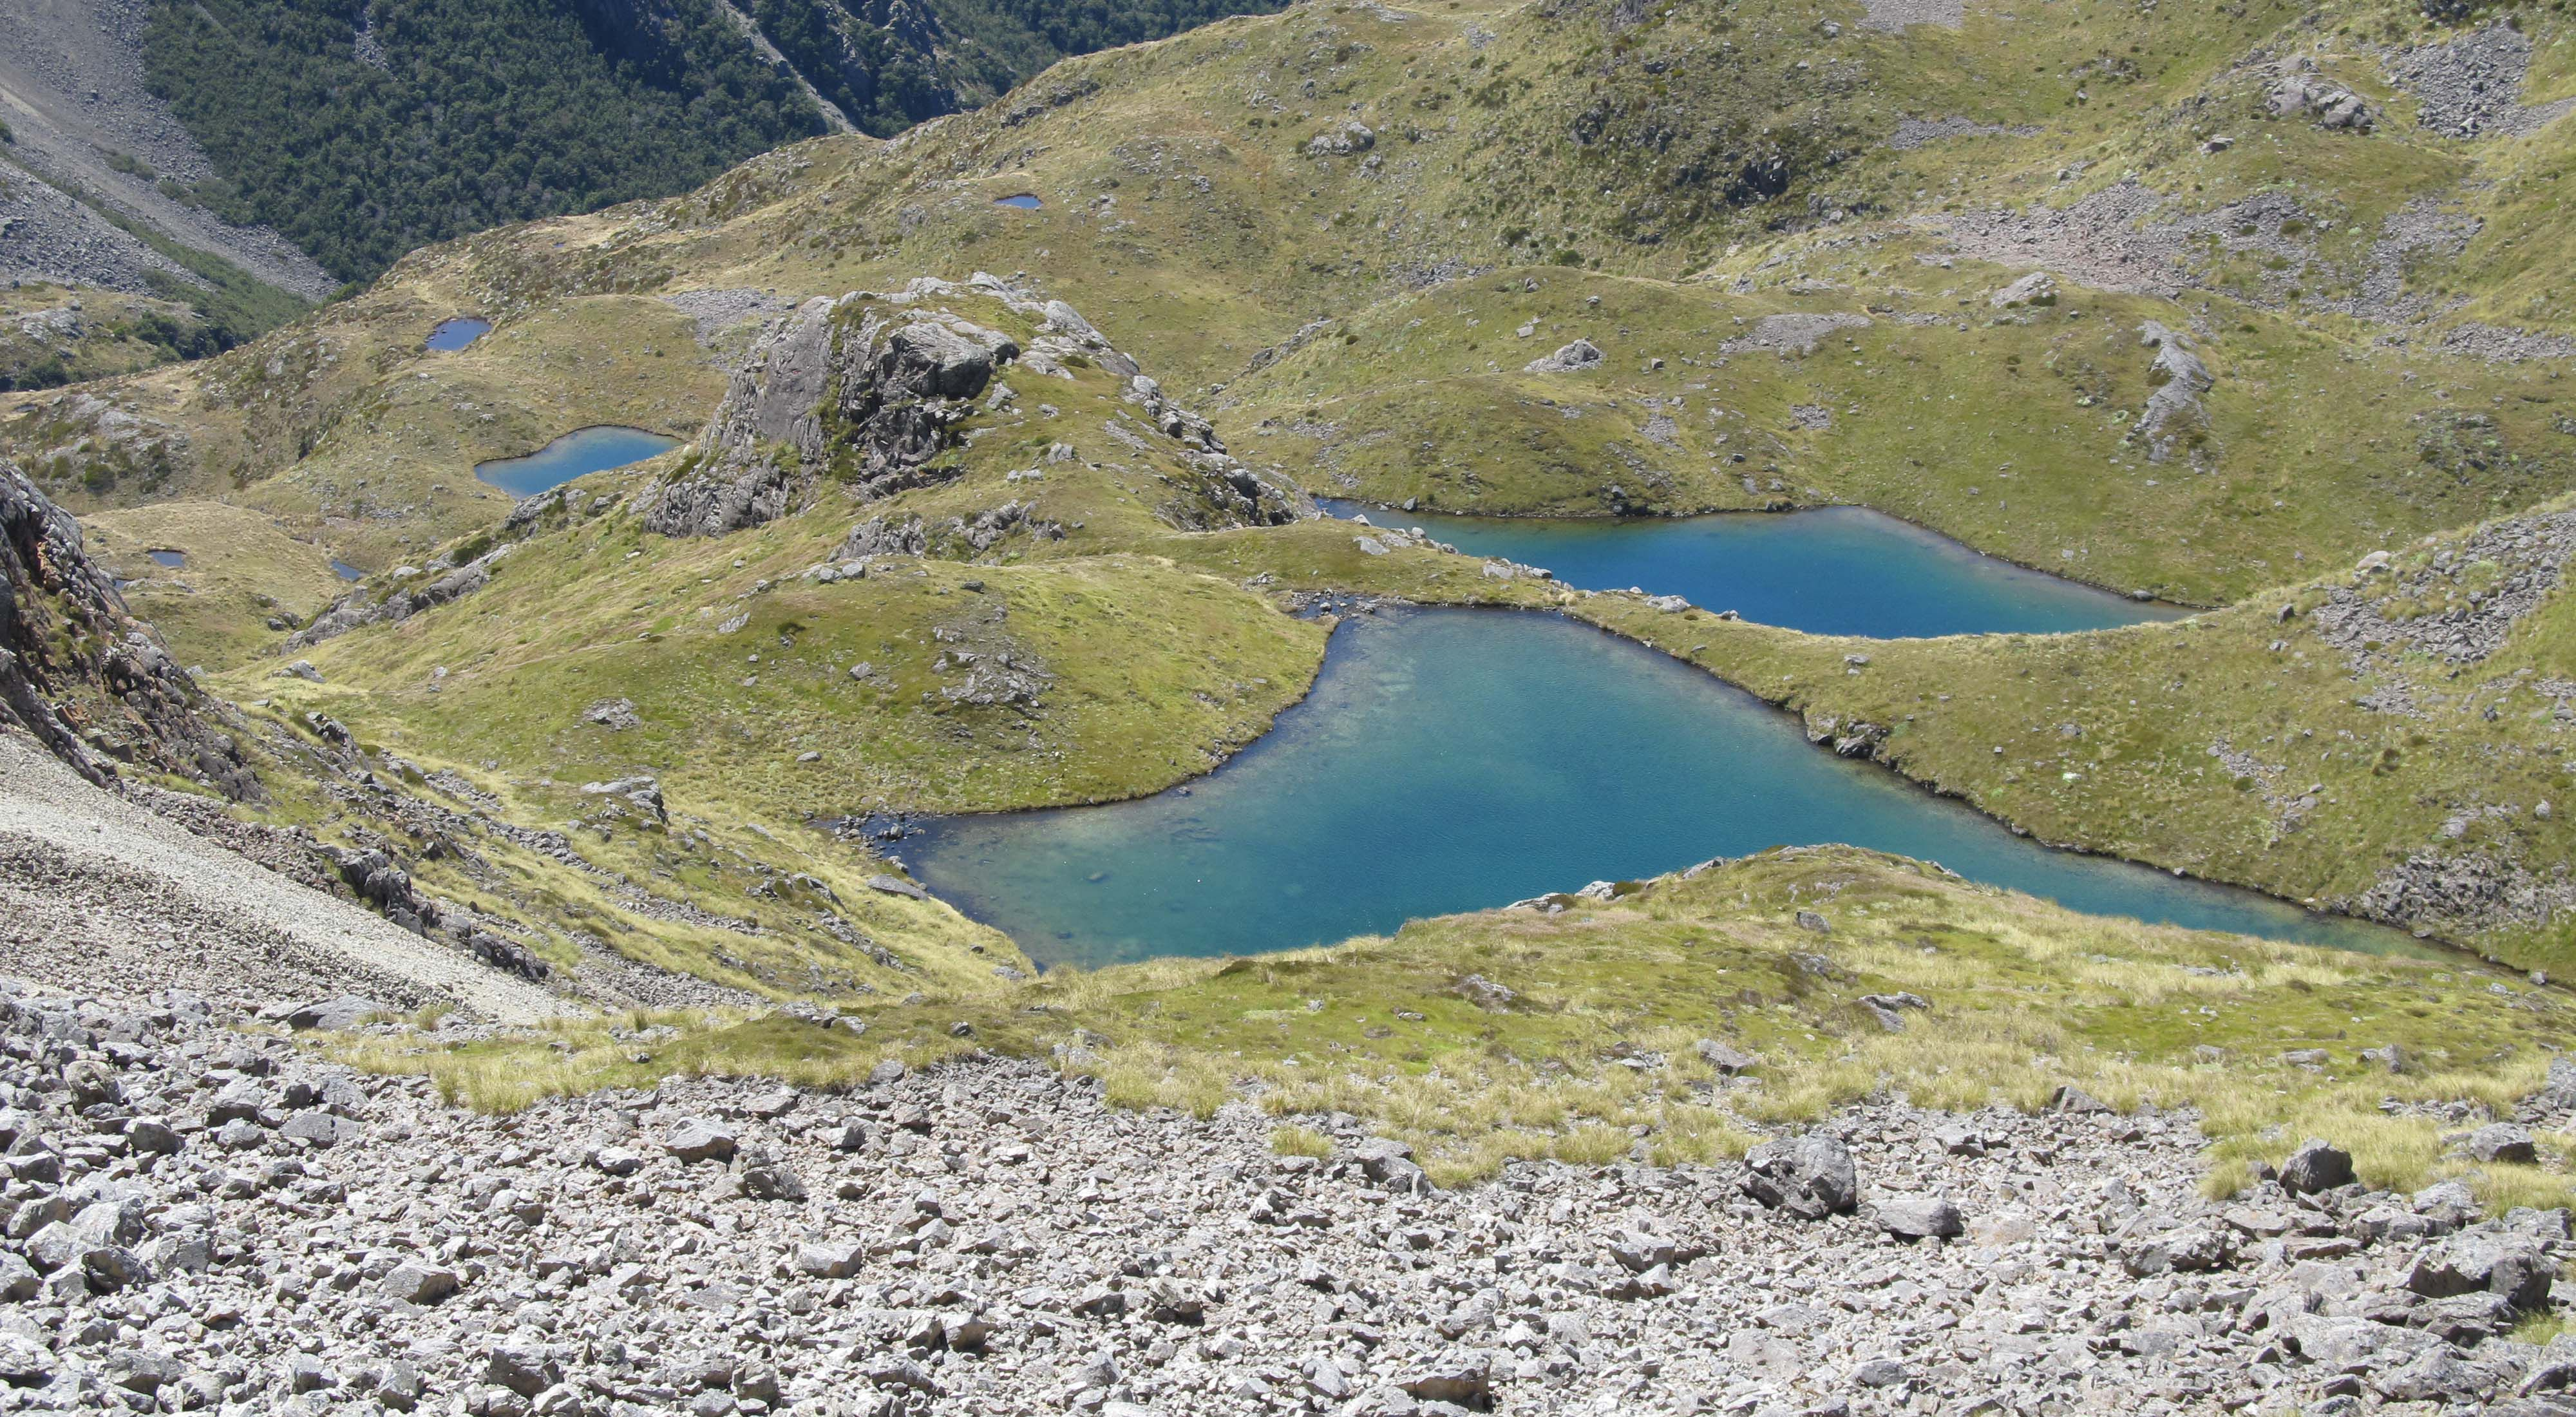 Mountains with small blue lakes in the valleys.